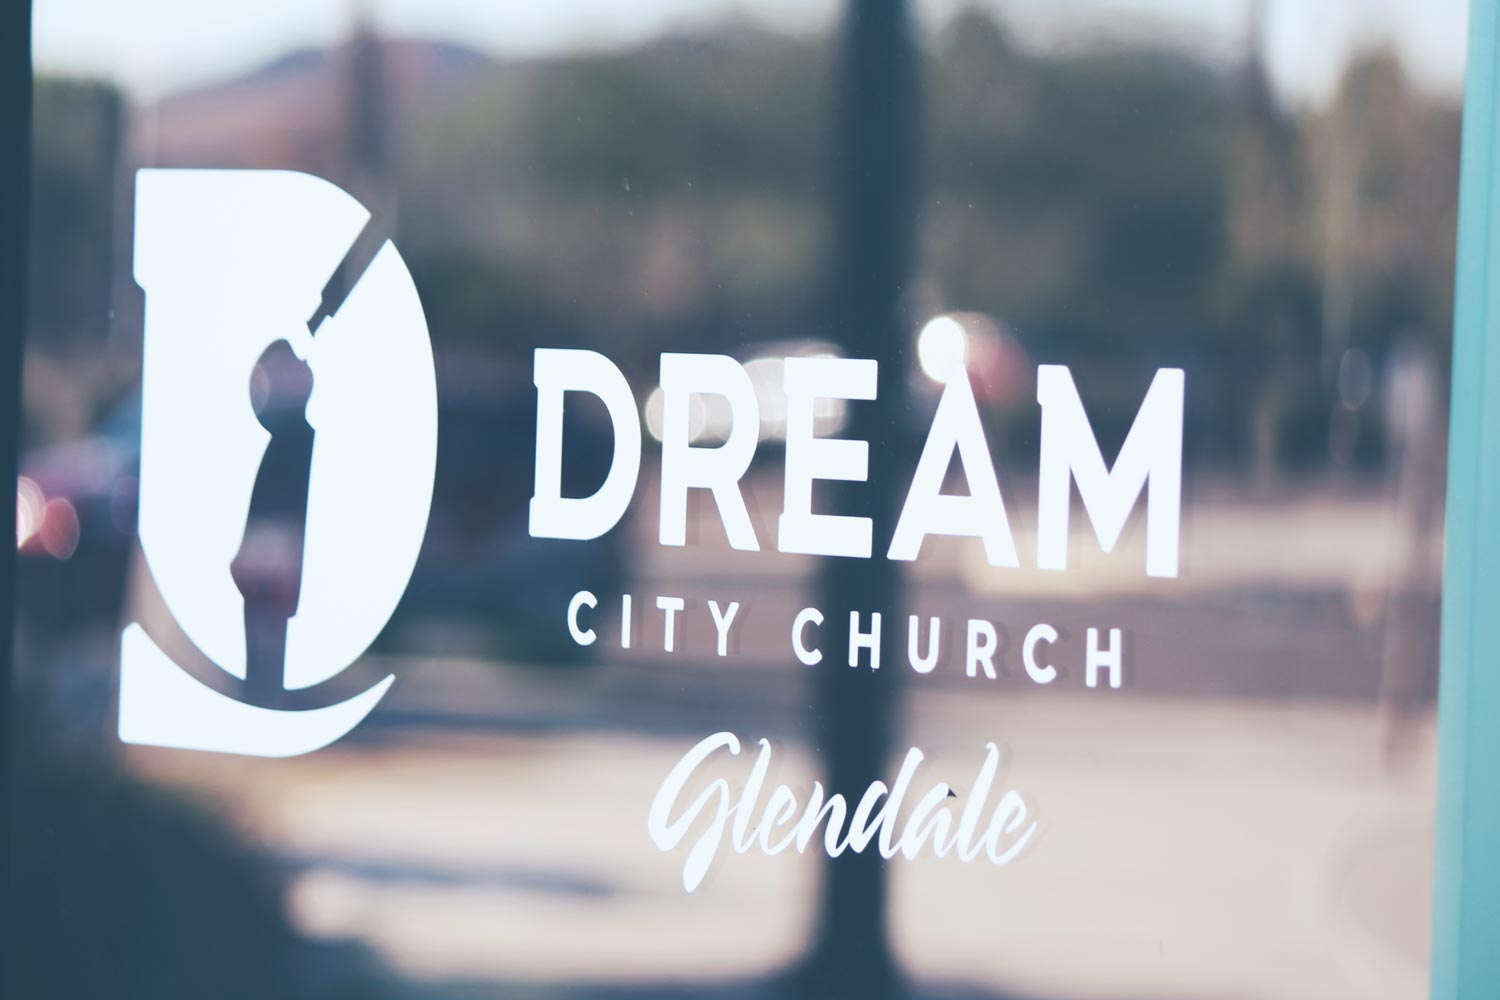 Dream City Church Glendale window decal